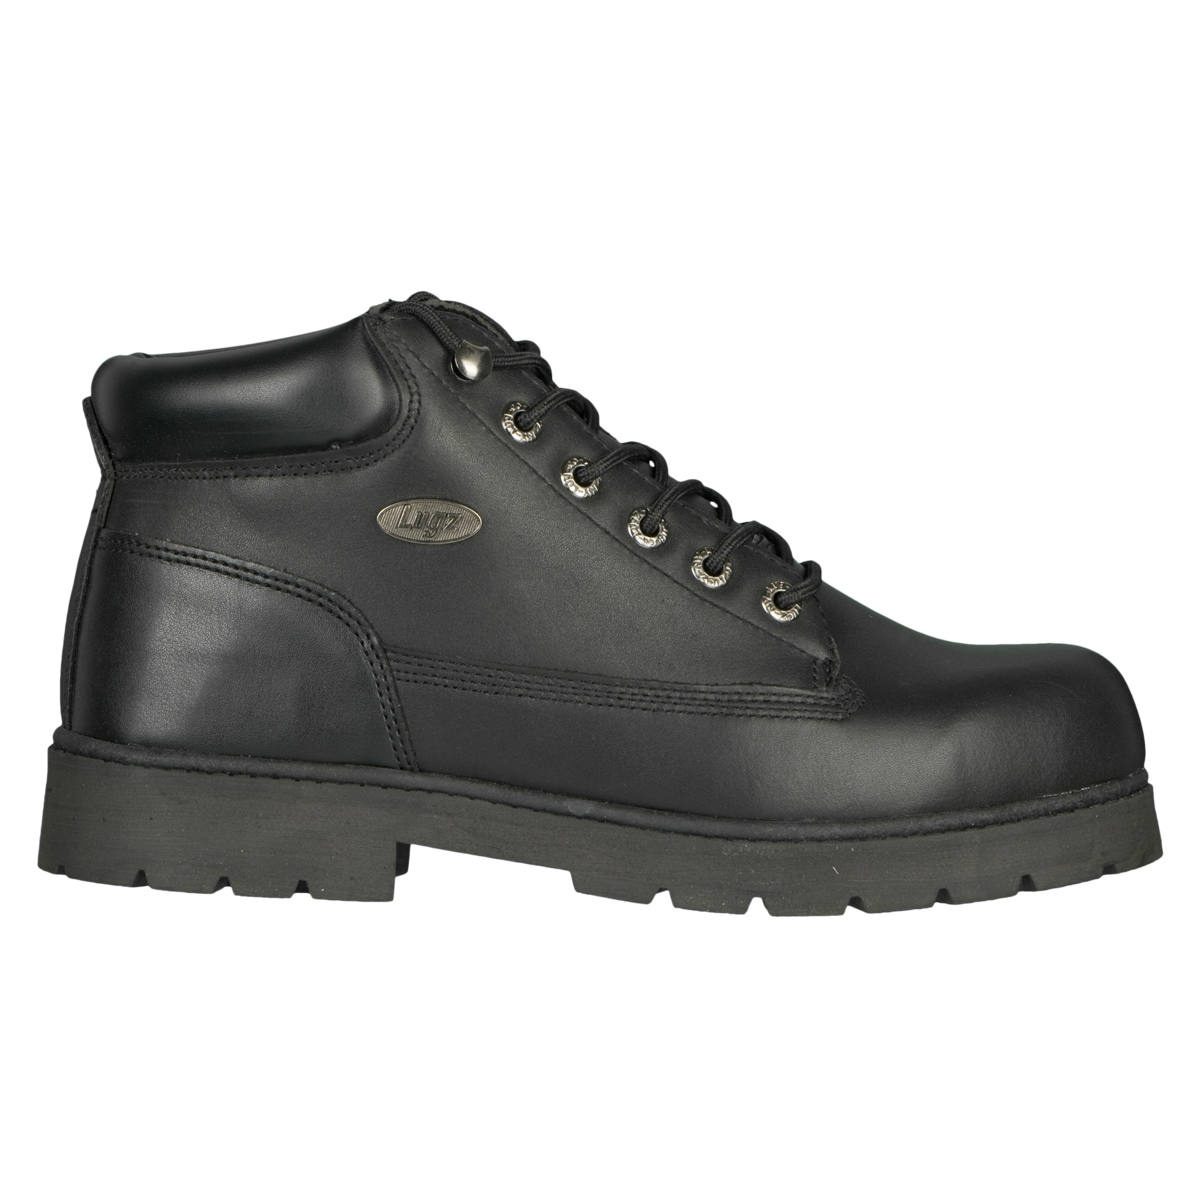 Lugz Drifter Steel Toe Mens Workproof Black